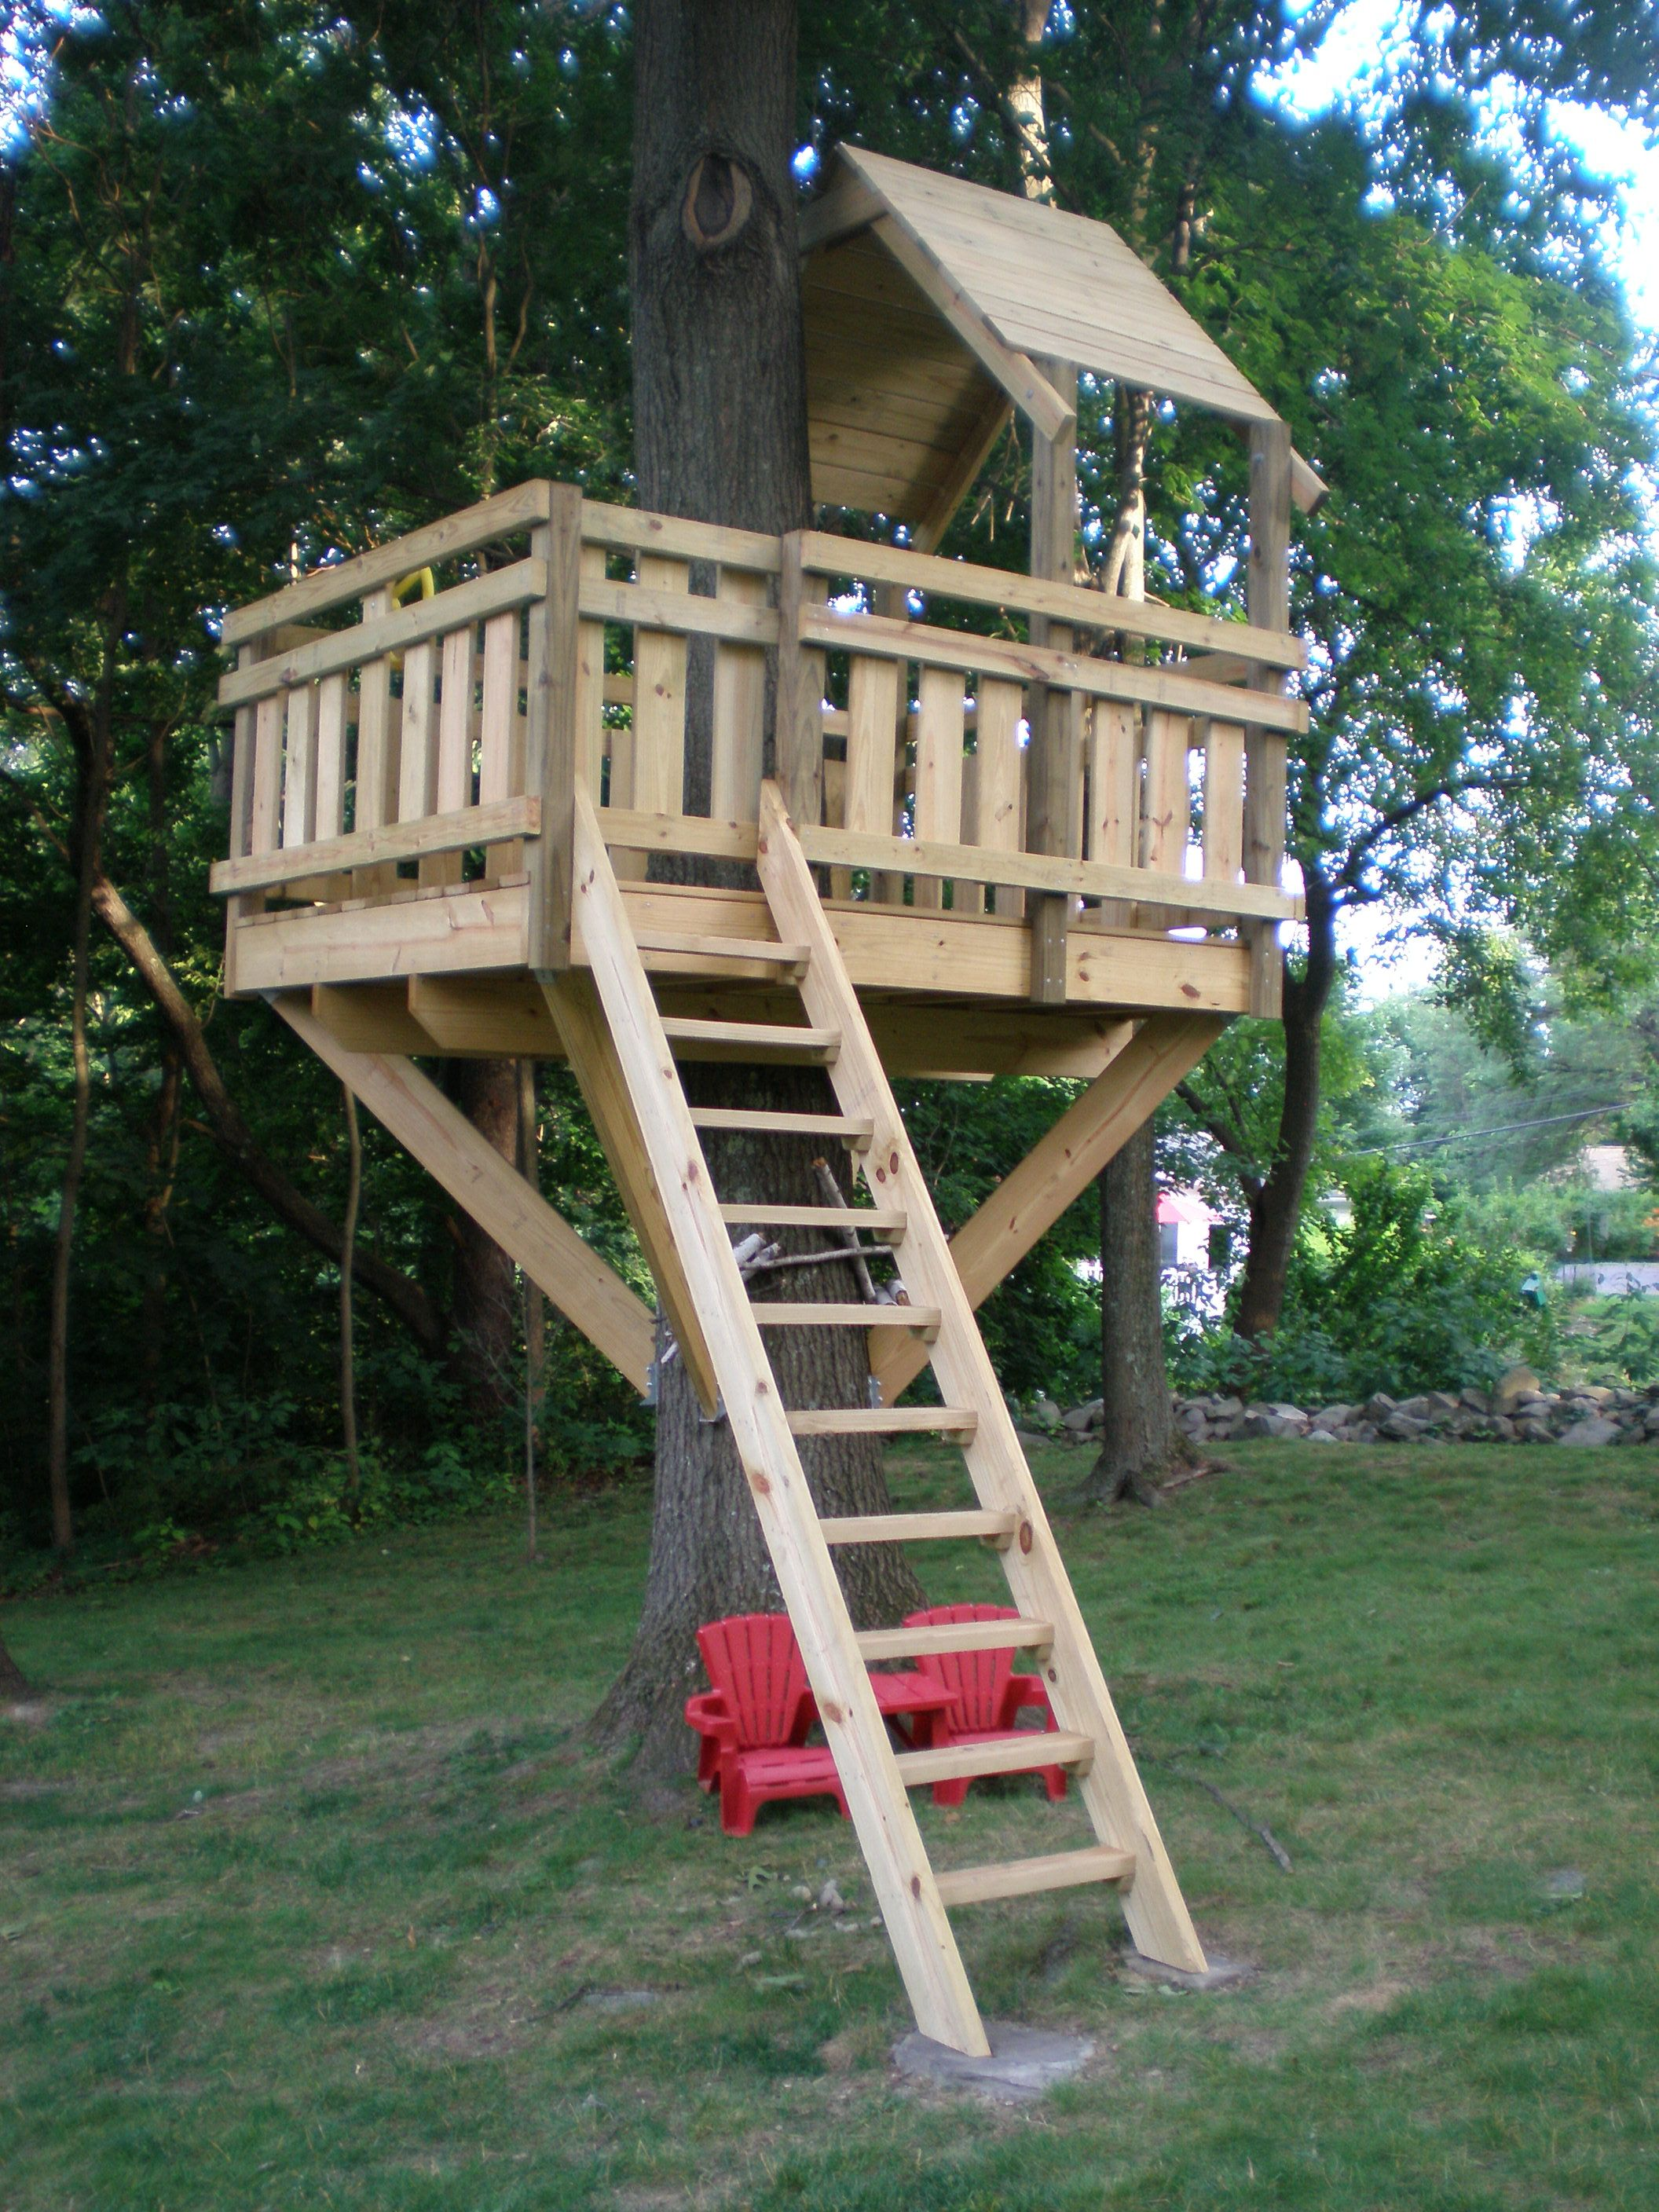 Tree Fort Ladder Gate Roof Finale Kids Tree Forts Backyard